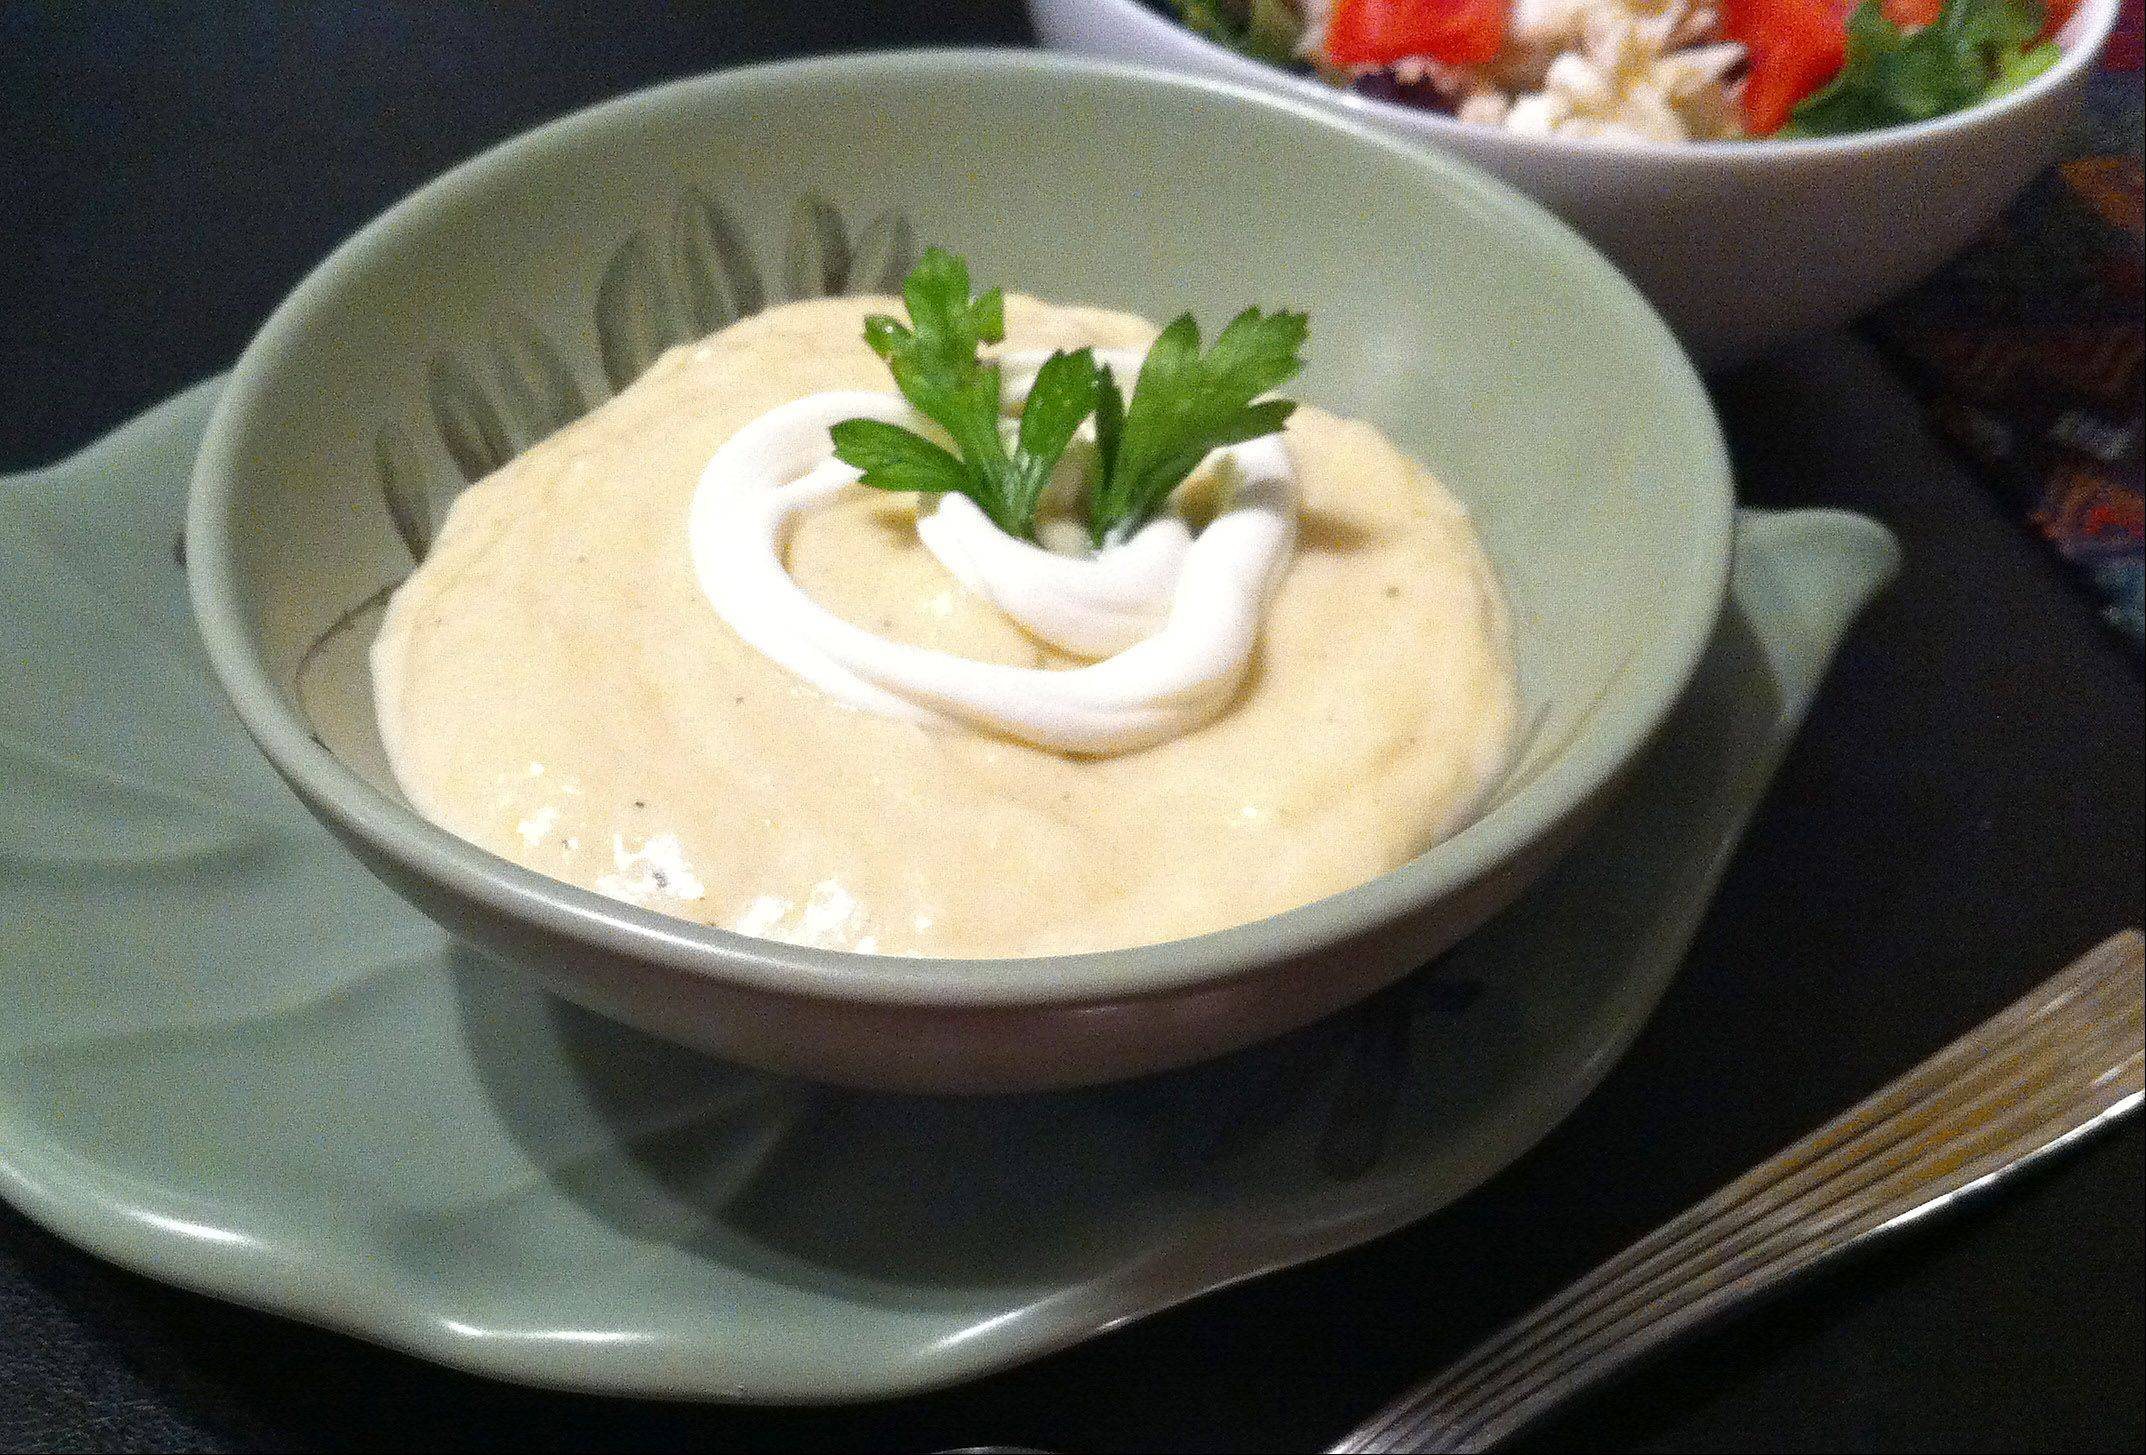 Vichyssoise, or as you might say, cold potato soup, makes a refreshing and filling summer meal.